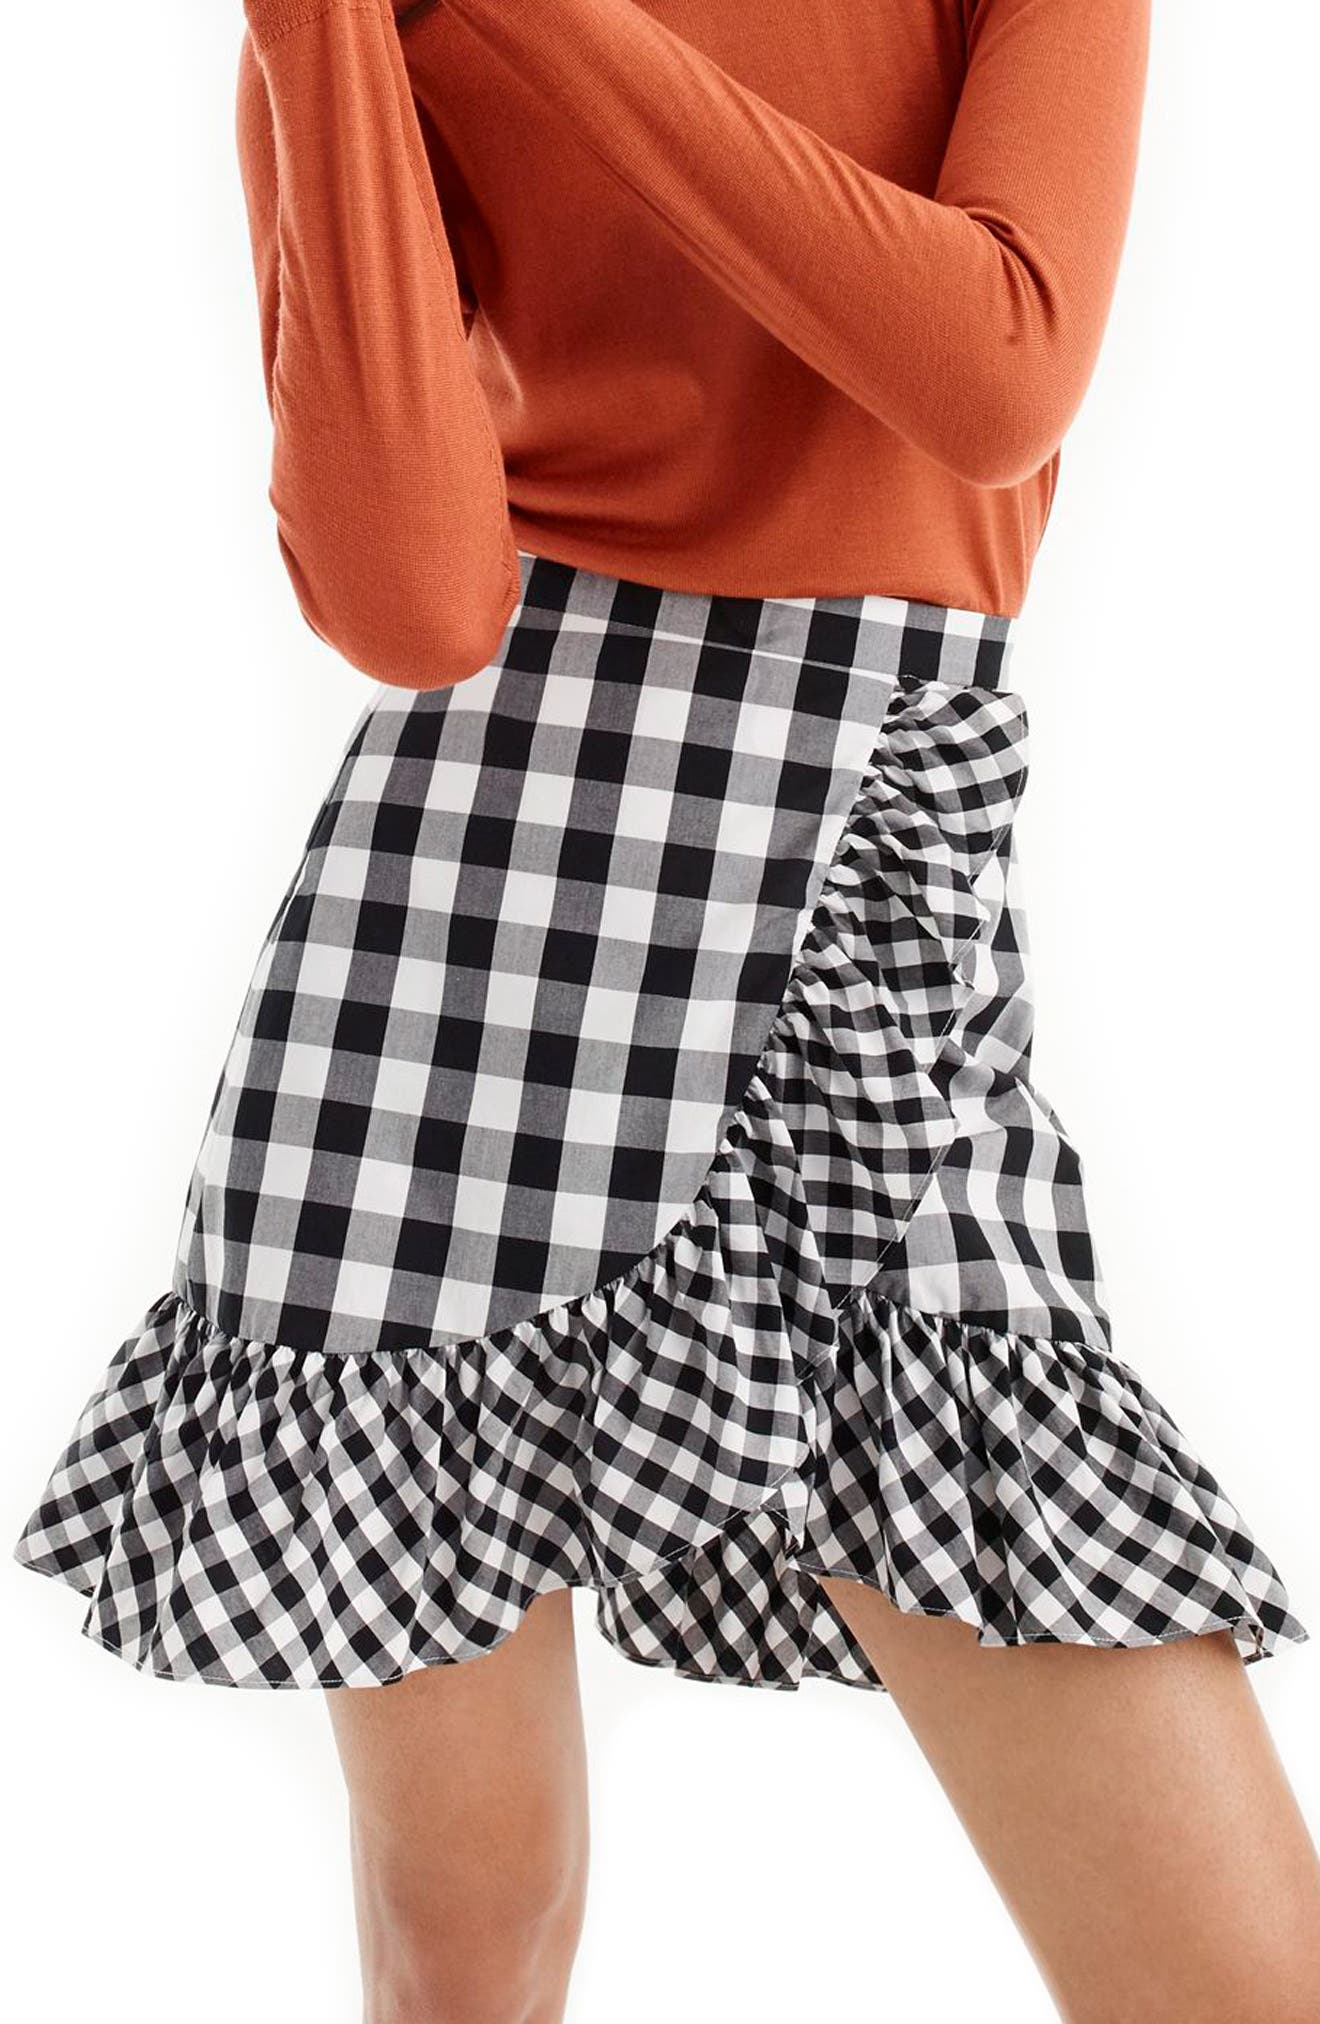 Pistachio Gingham Cotton Poplin Ruffle Skirt,                         Main,                         color, 010